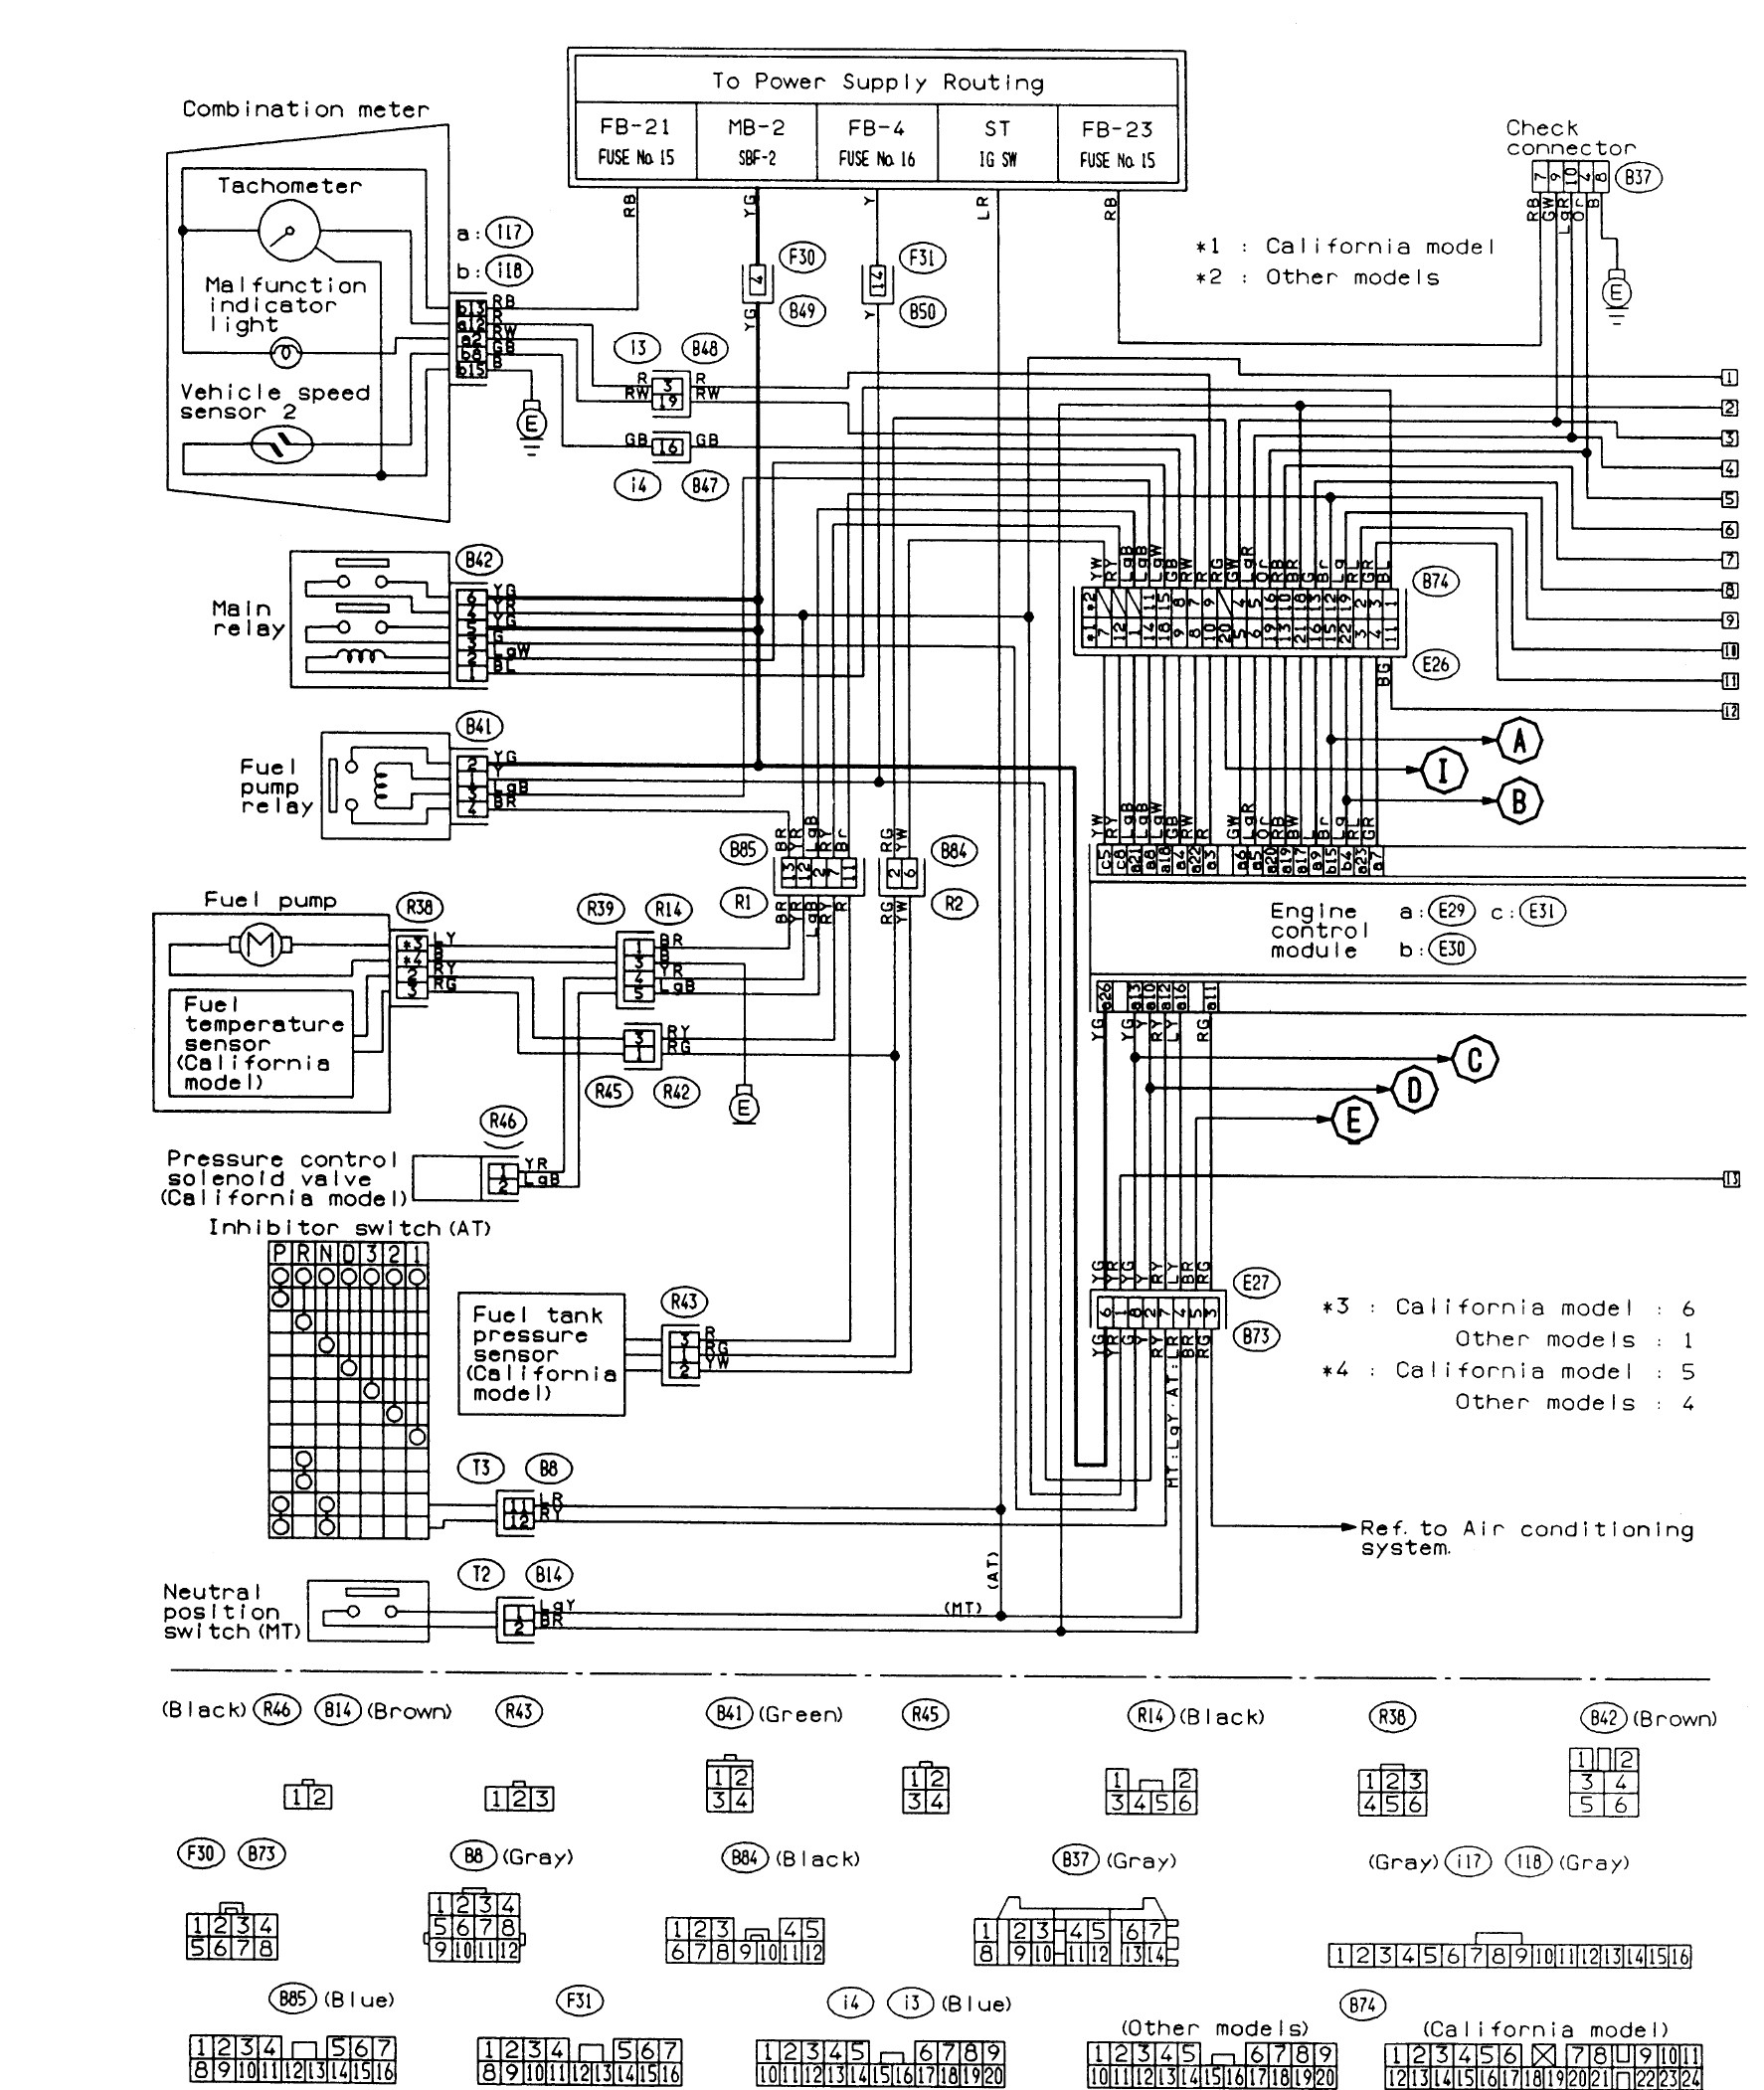 Wiring Diagram For Subaru Legacy • Wiring Diagram For Free